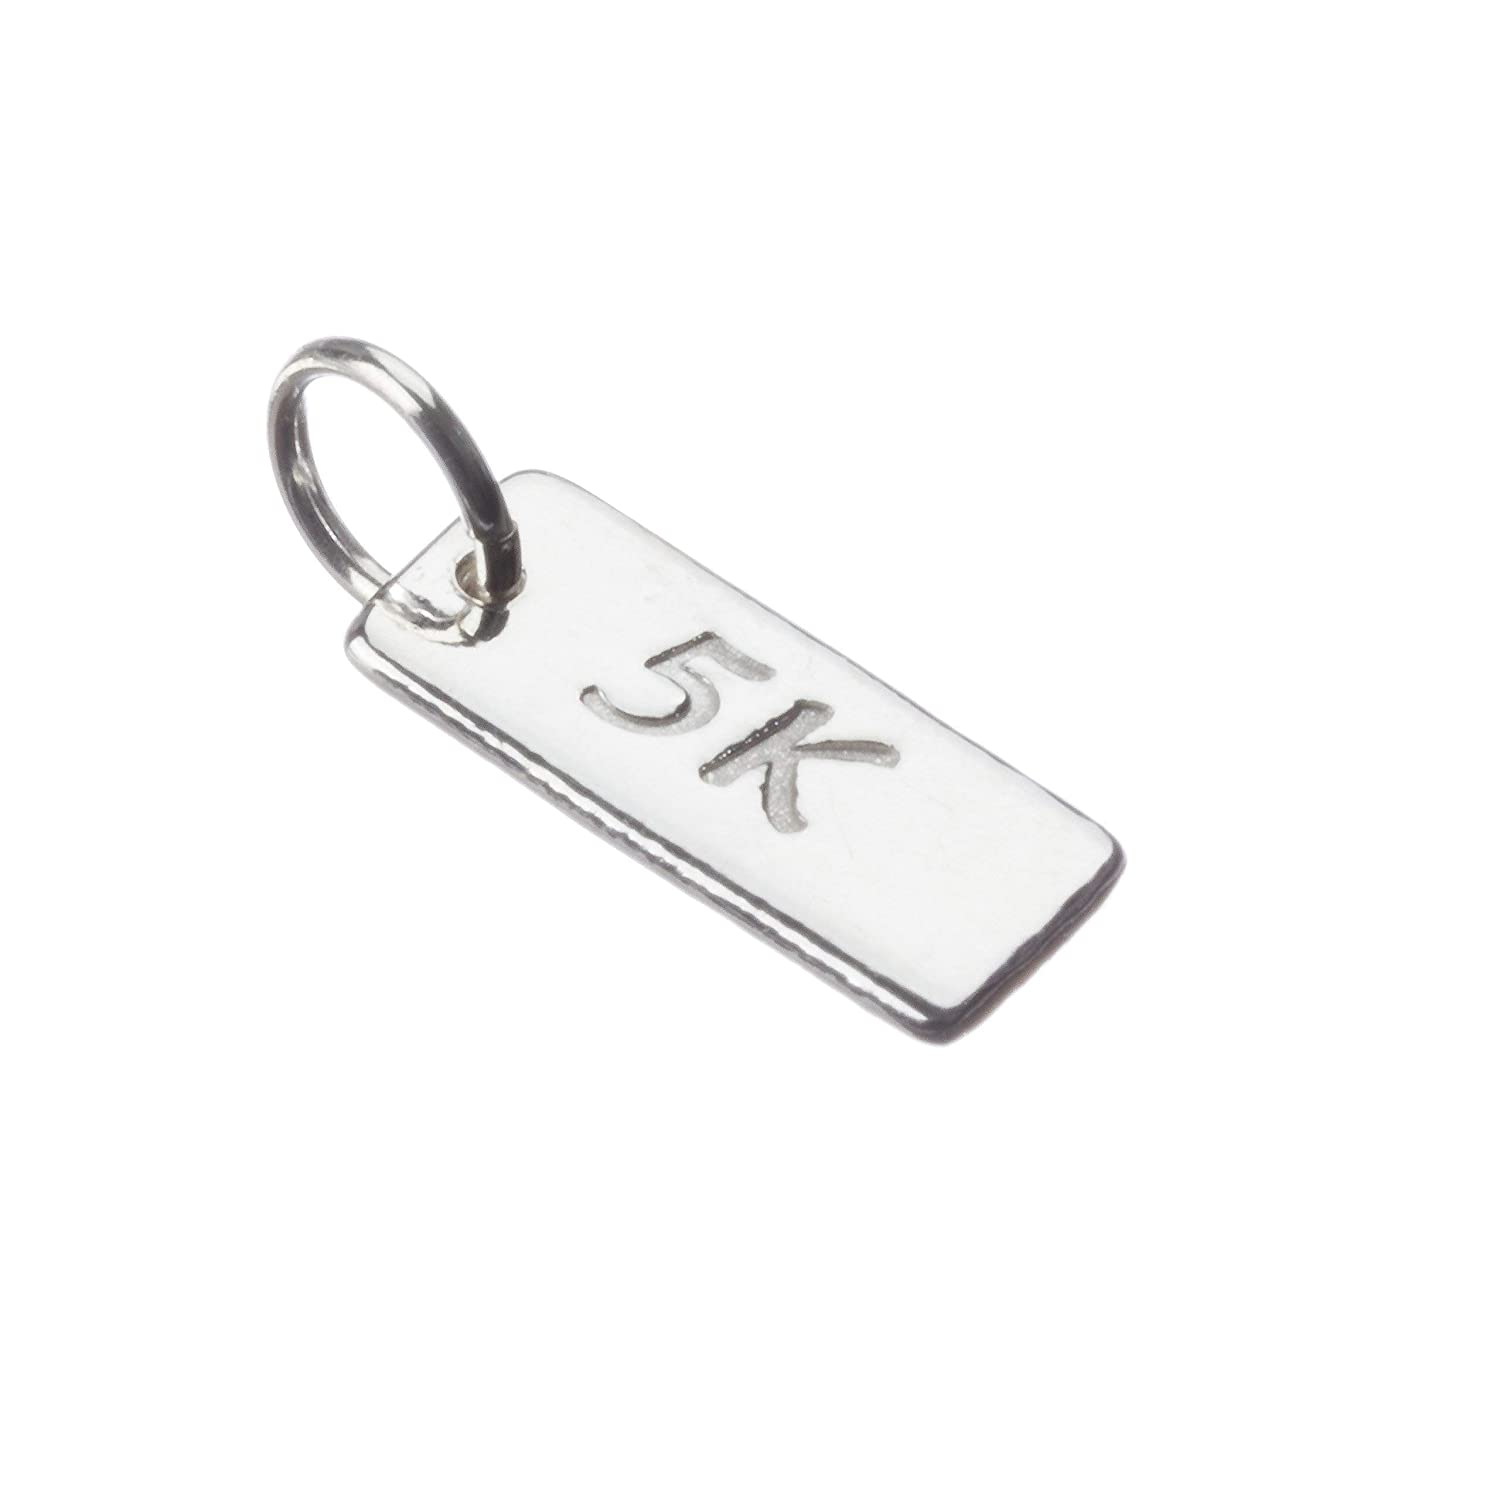 One TINY 5K sterling silver running charm. Running Jewelry 5K Charm